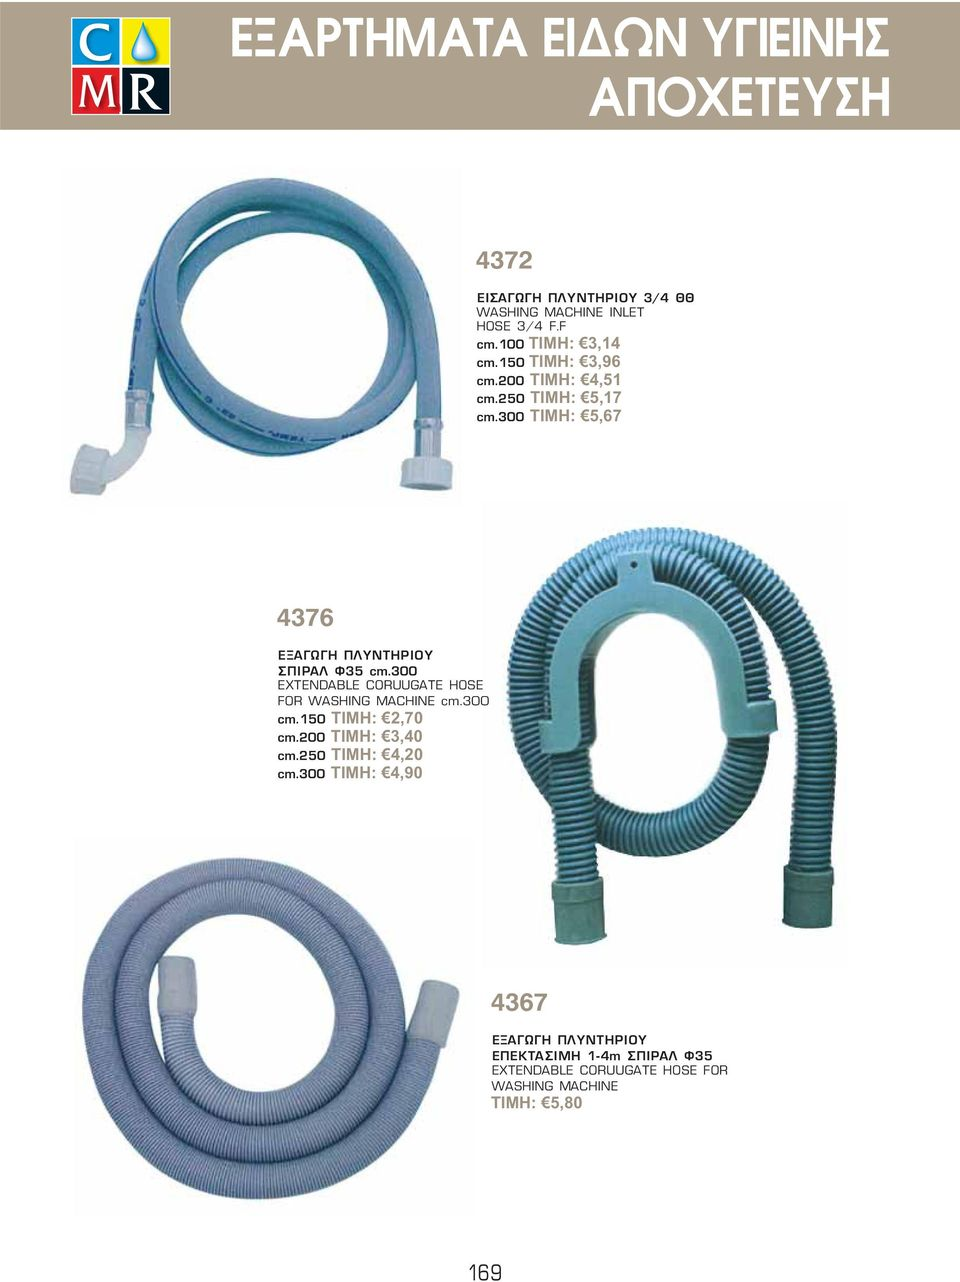 300 EXTENDABLE CORUUGATE HOSE FOR WASHING MACHINE cm.300 cm.150 ΤΙΜΗ: 2,70 cm.200 ΤΙΜΗ: 3,40 cm.